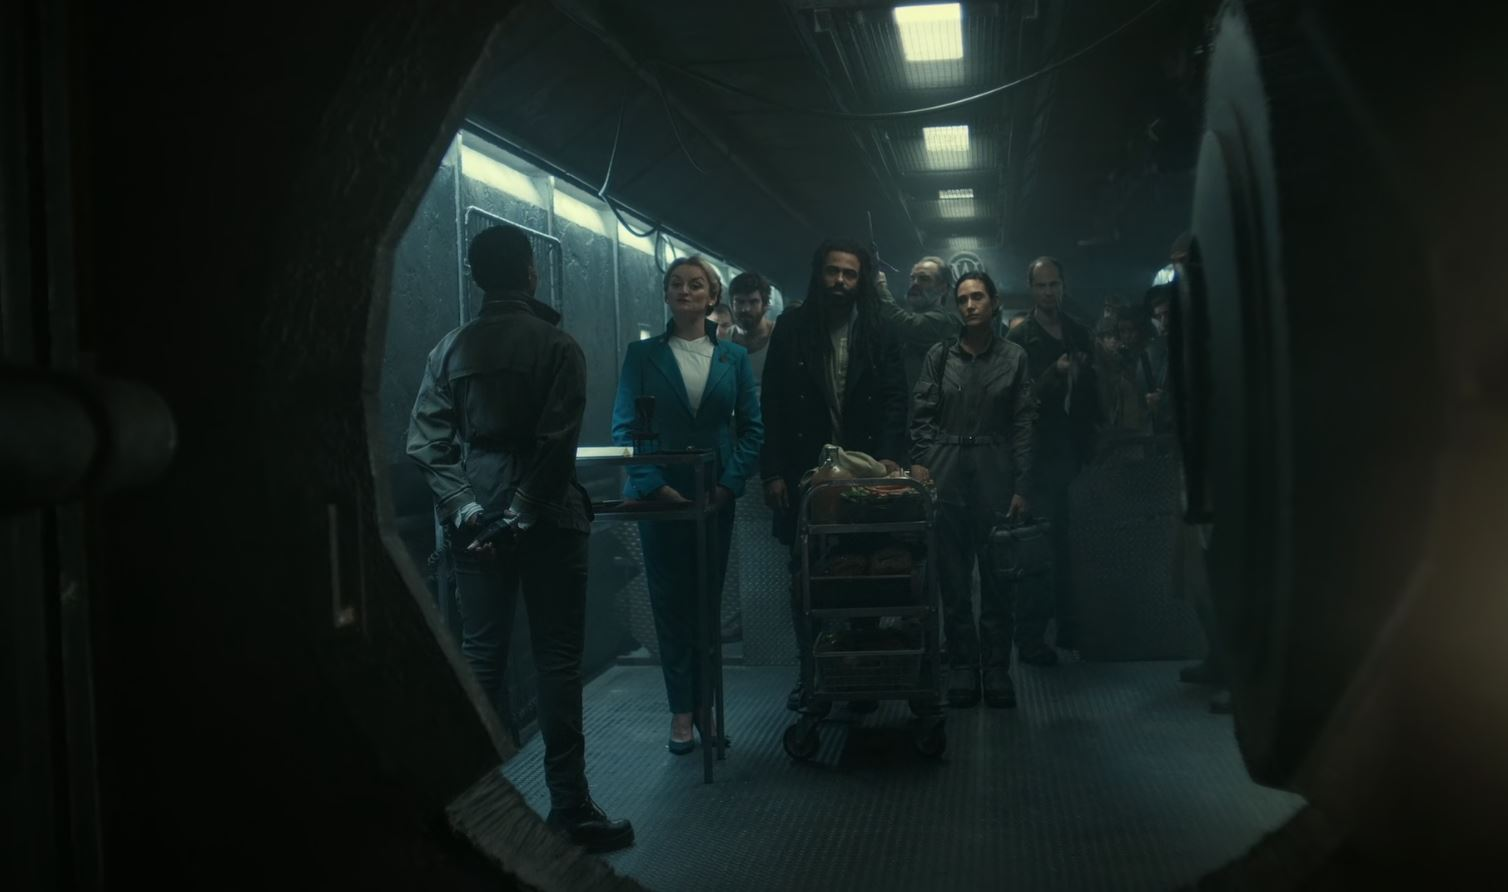 TV Show Review: Snowpiercer Season 2 Episode 3